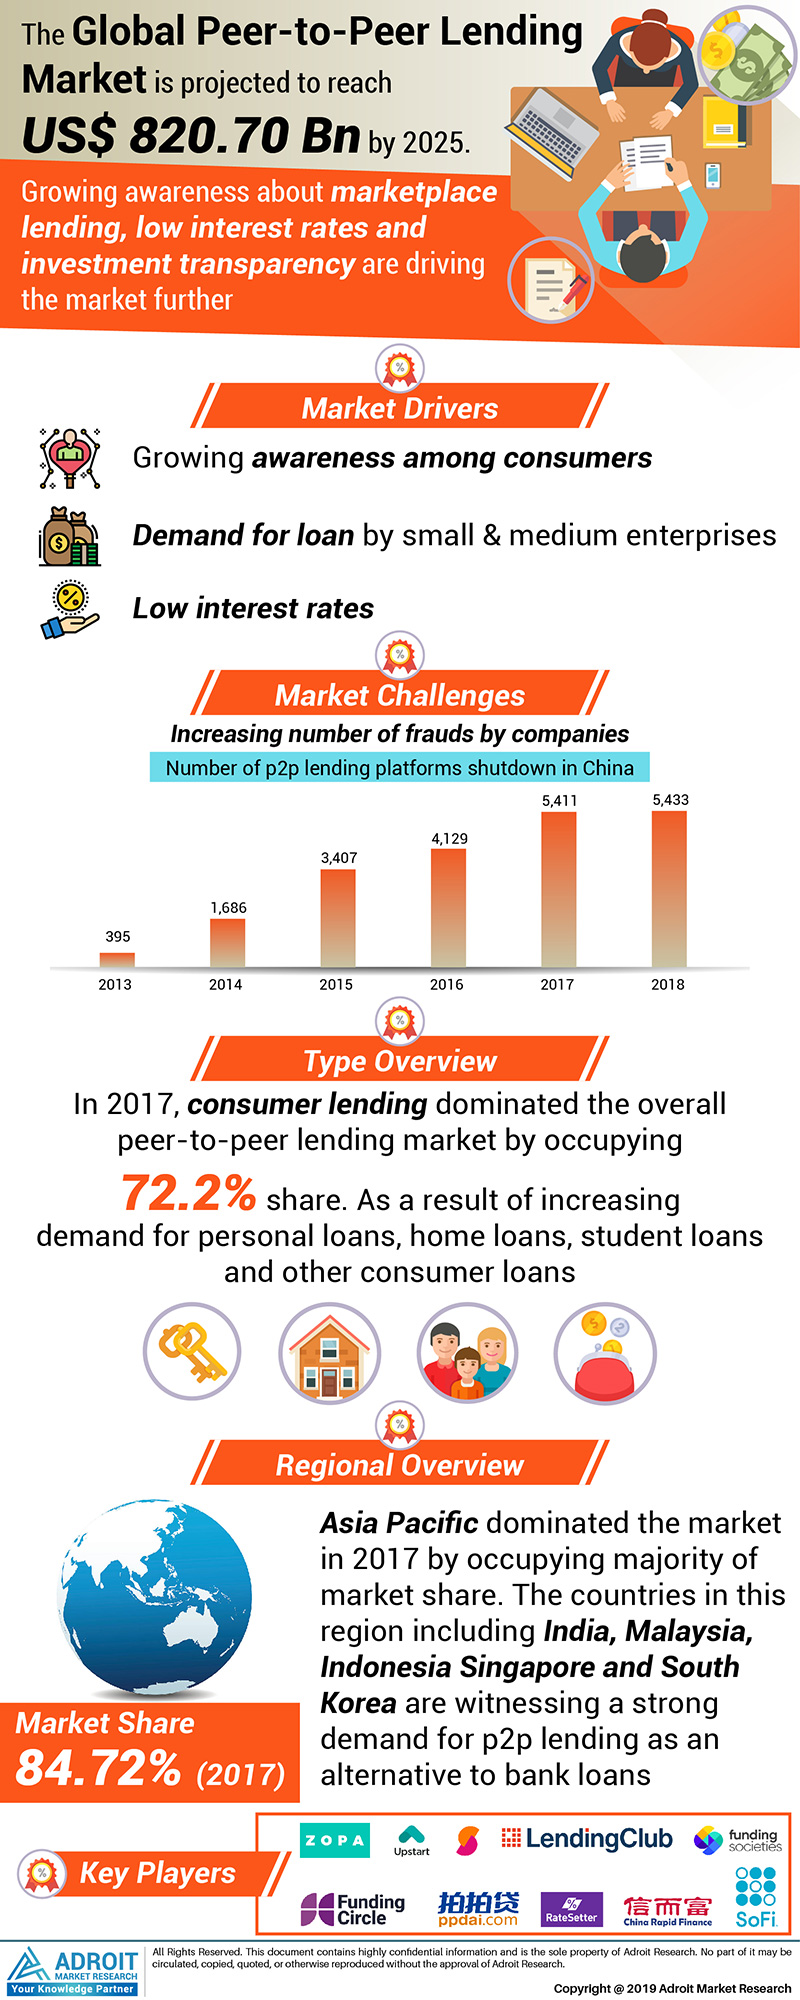 Global Peer to Peer (P2P) Lending Market Size 2017 By Type, Region and Forecast 2018 to 2025